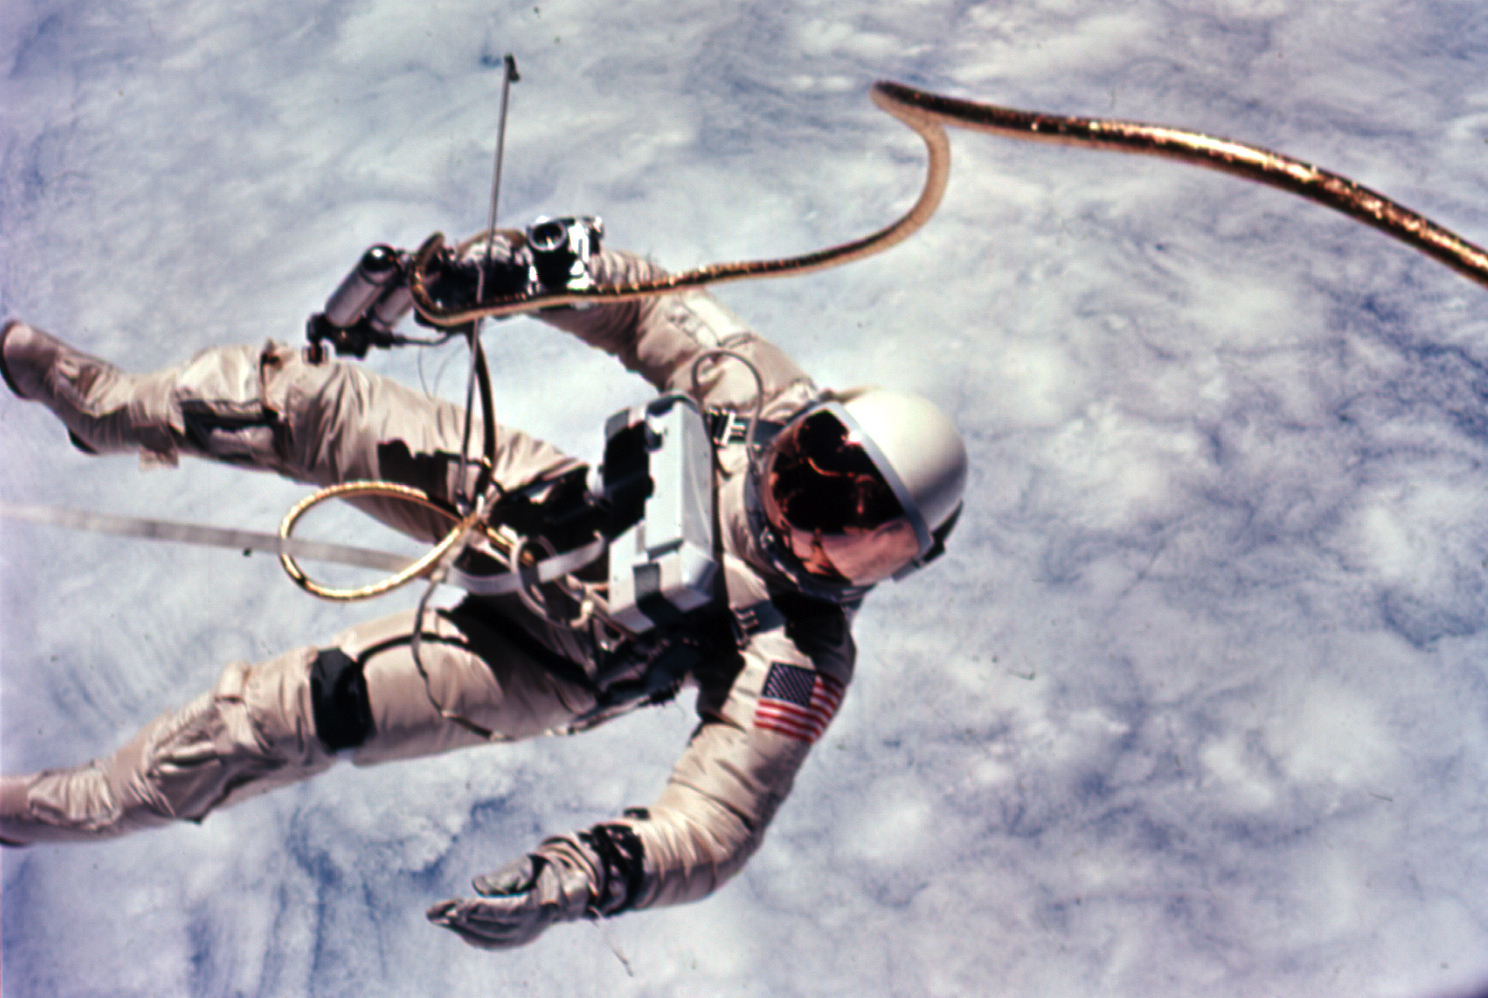 Astronaut Edward White - First America Spacewalk - Quelle: WikiCommons